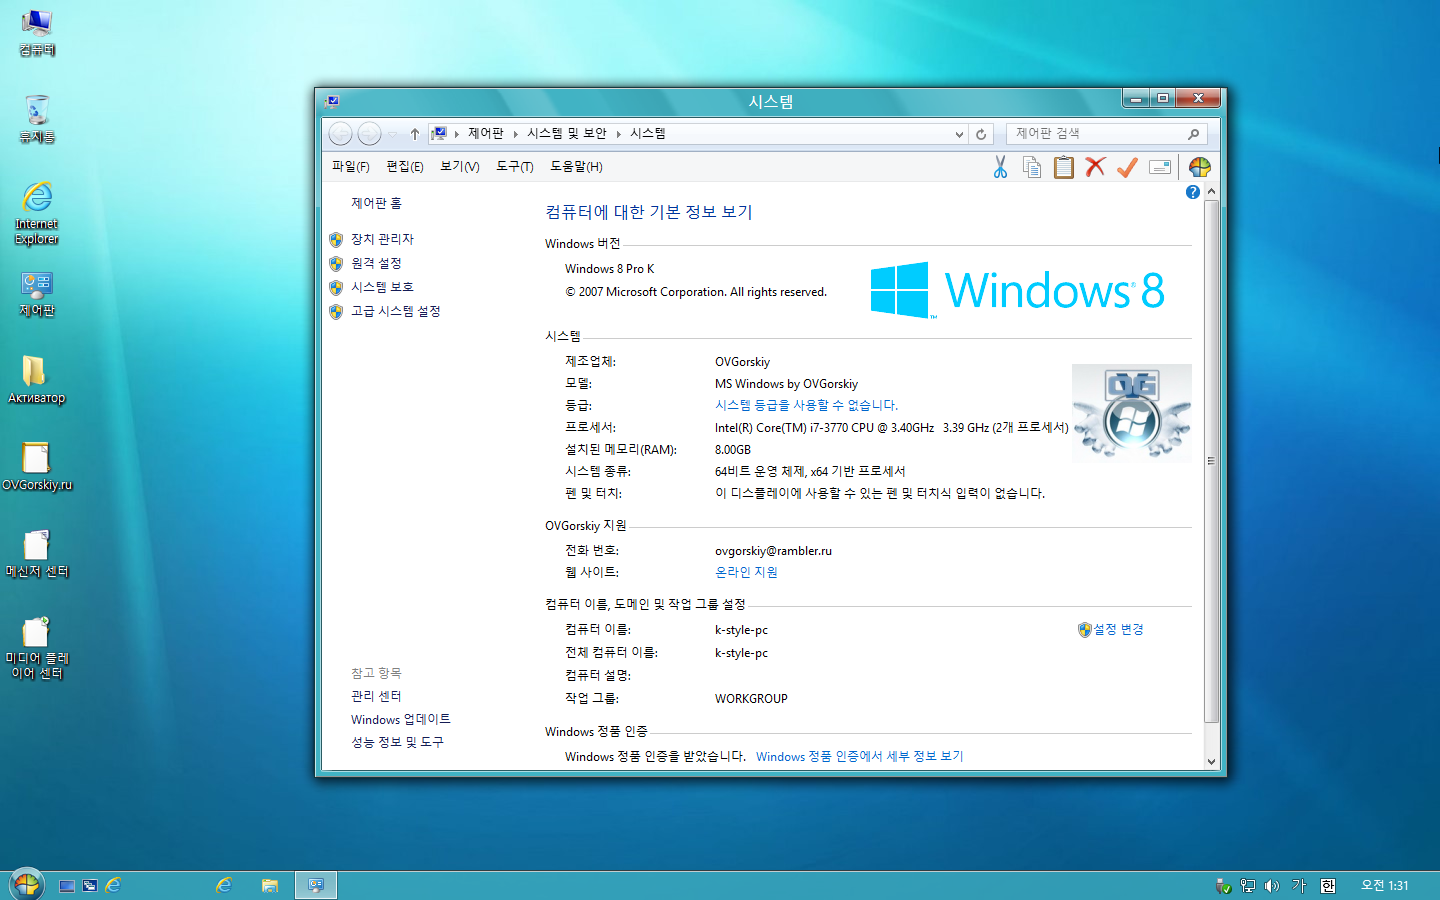 windows 8.1 professional vl with update 3 by ovgorskiy